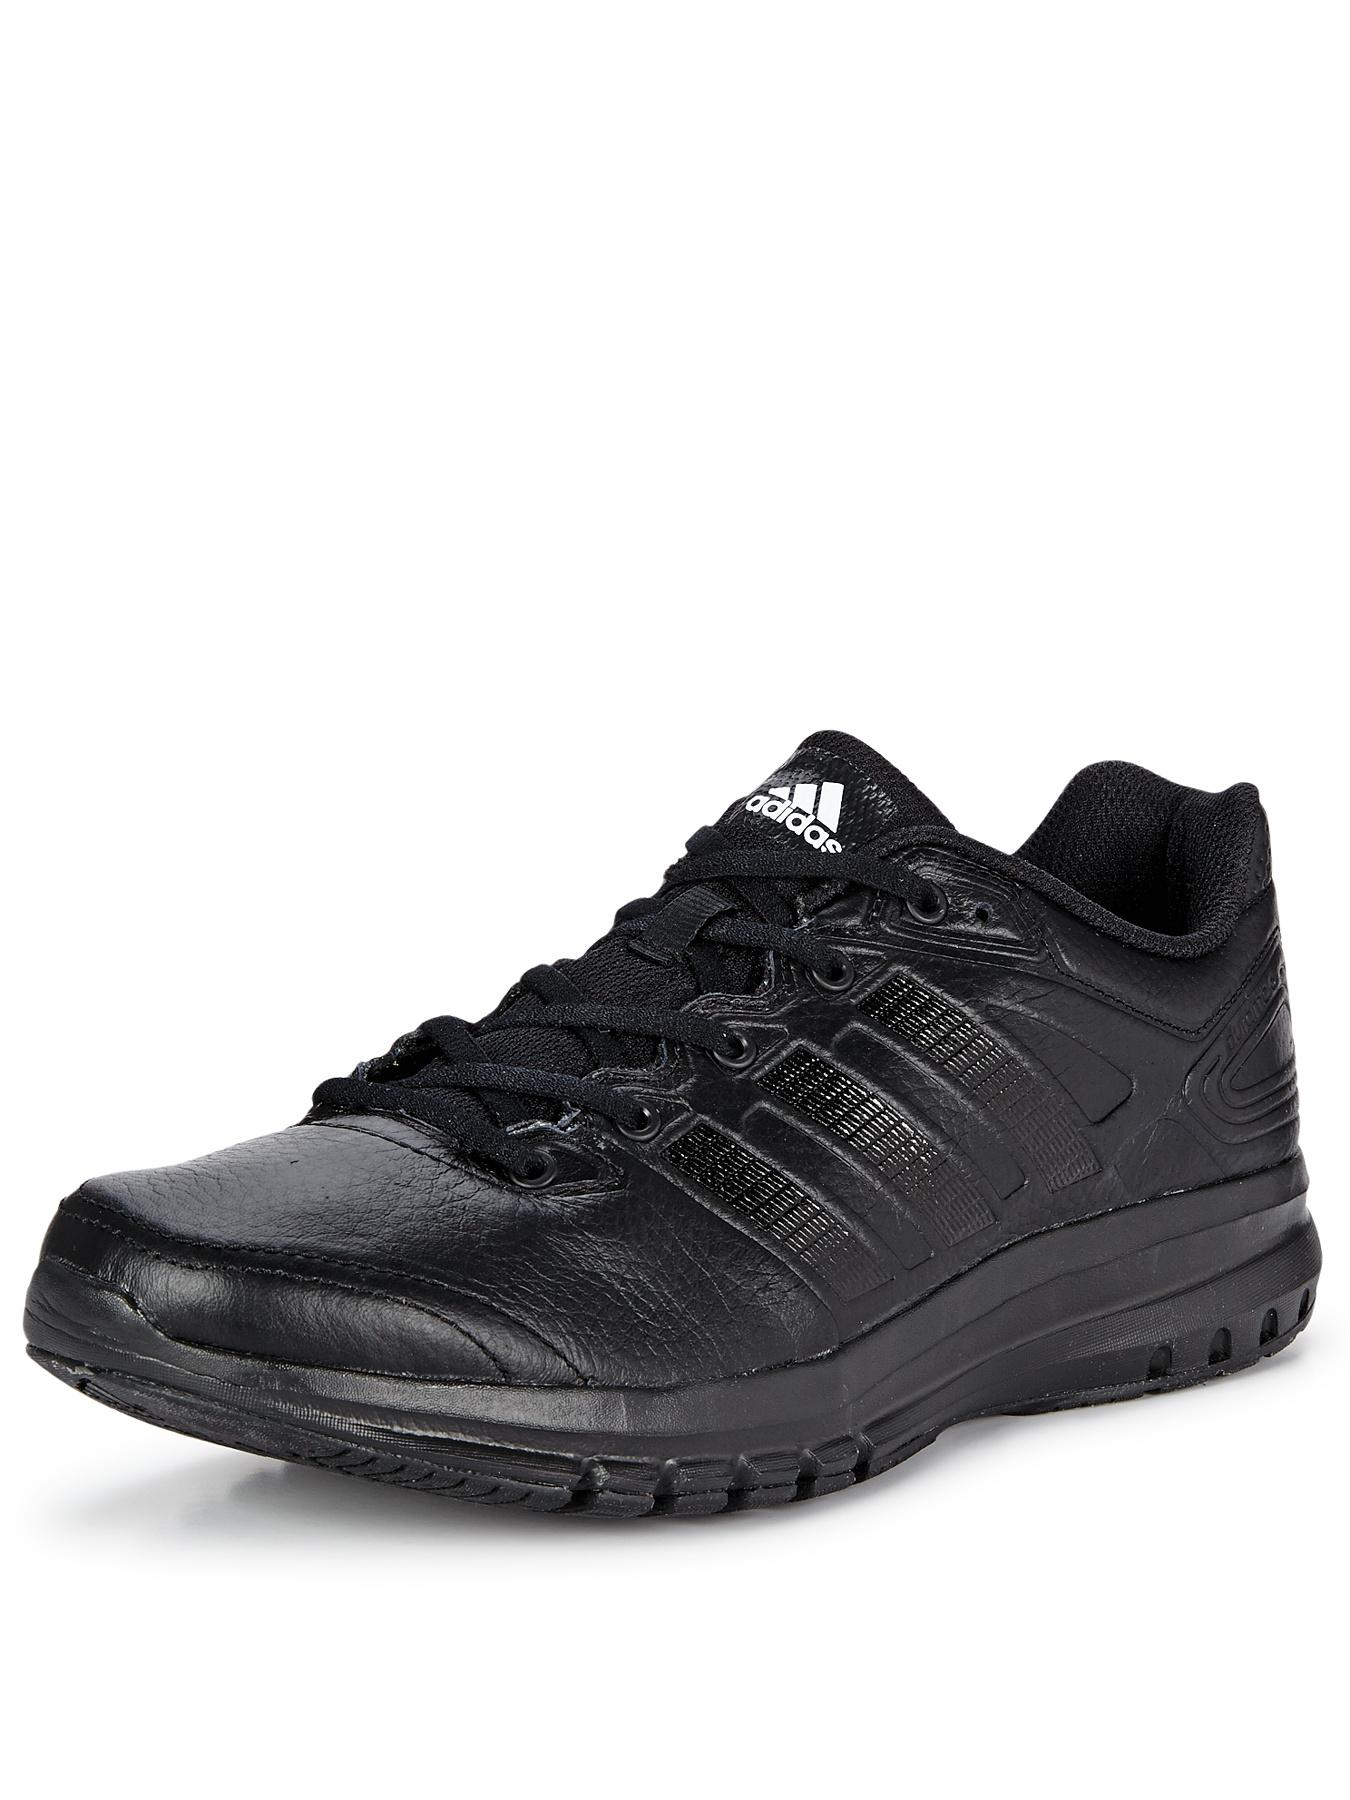 Duramo 6 Leather Mens Trainers - Black, Black